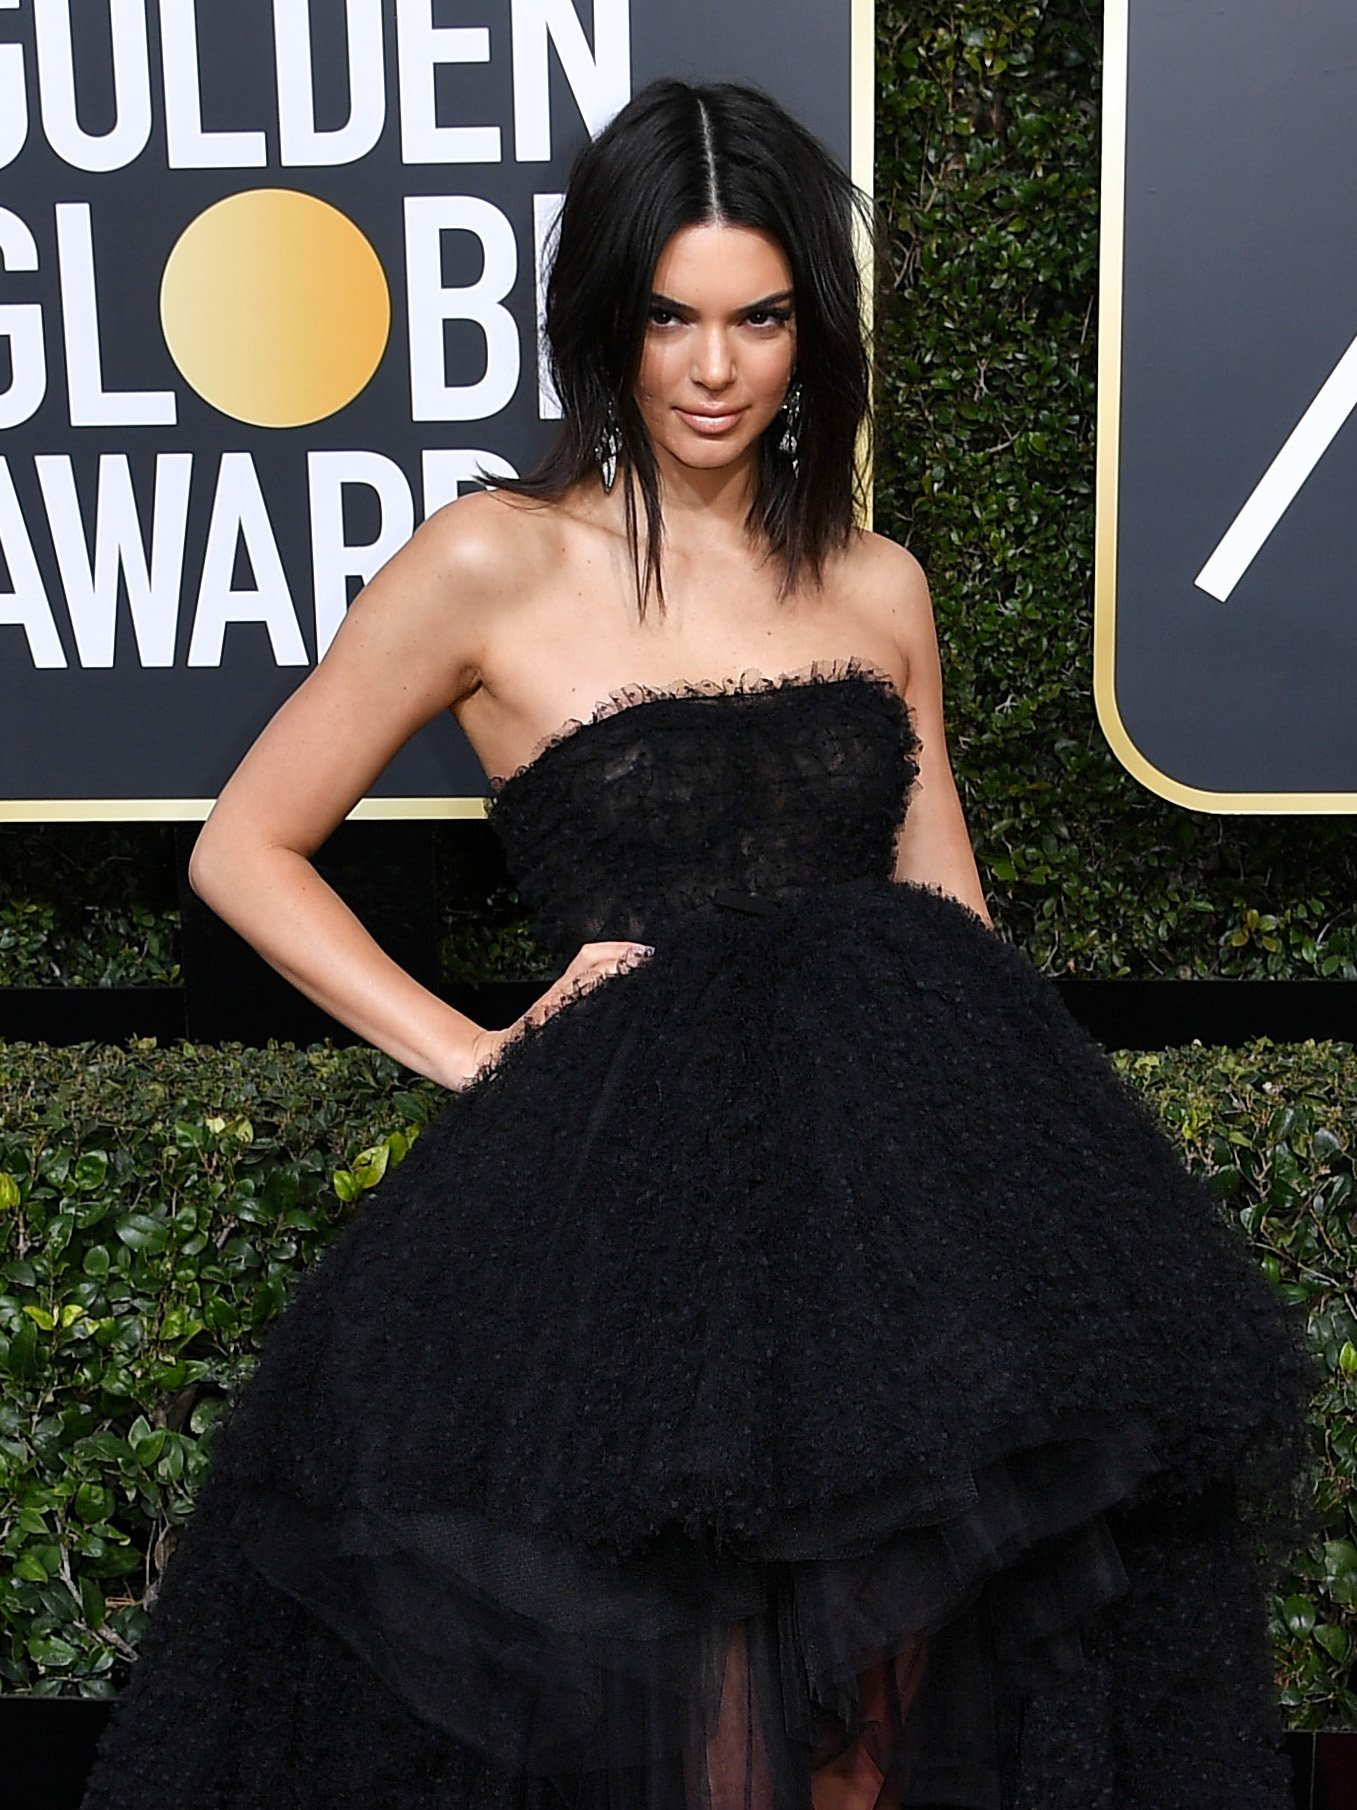 Kendall Jenner slams trolls who criticised her acne at Golden Globes 2018